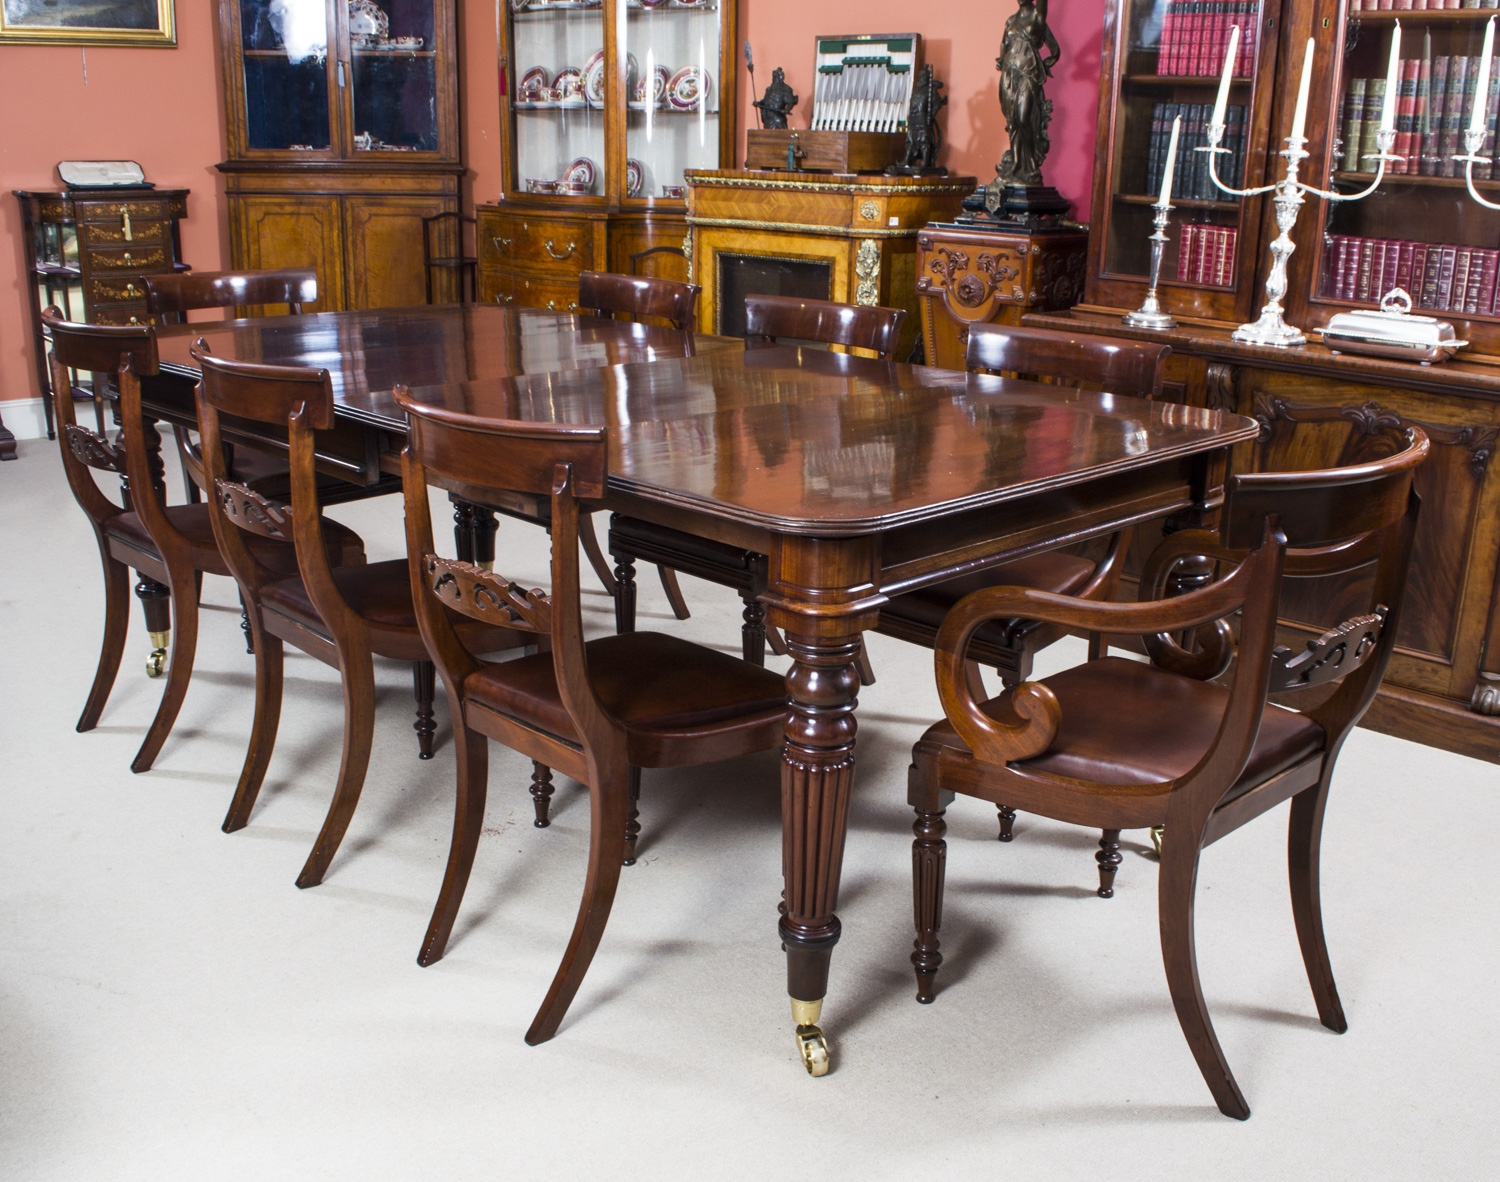 06625a Antique Regency Mahogany Dining Table 8 Regency Chairs 1